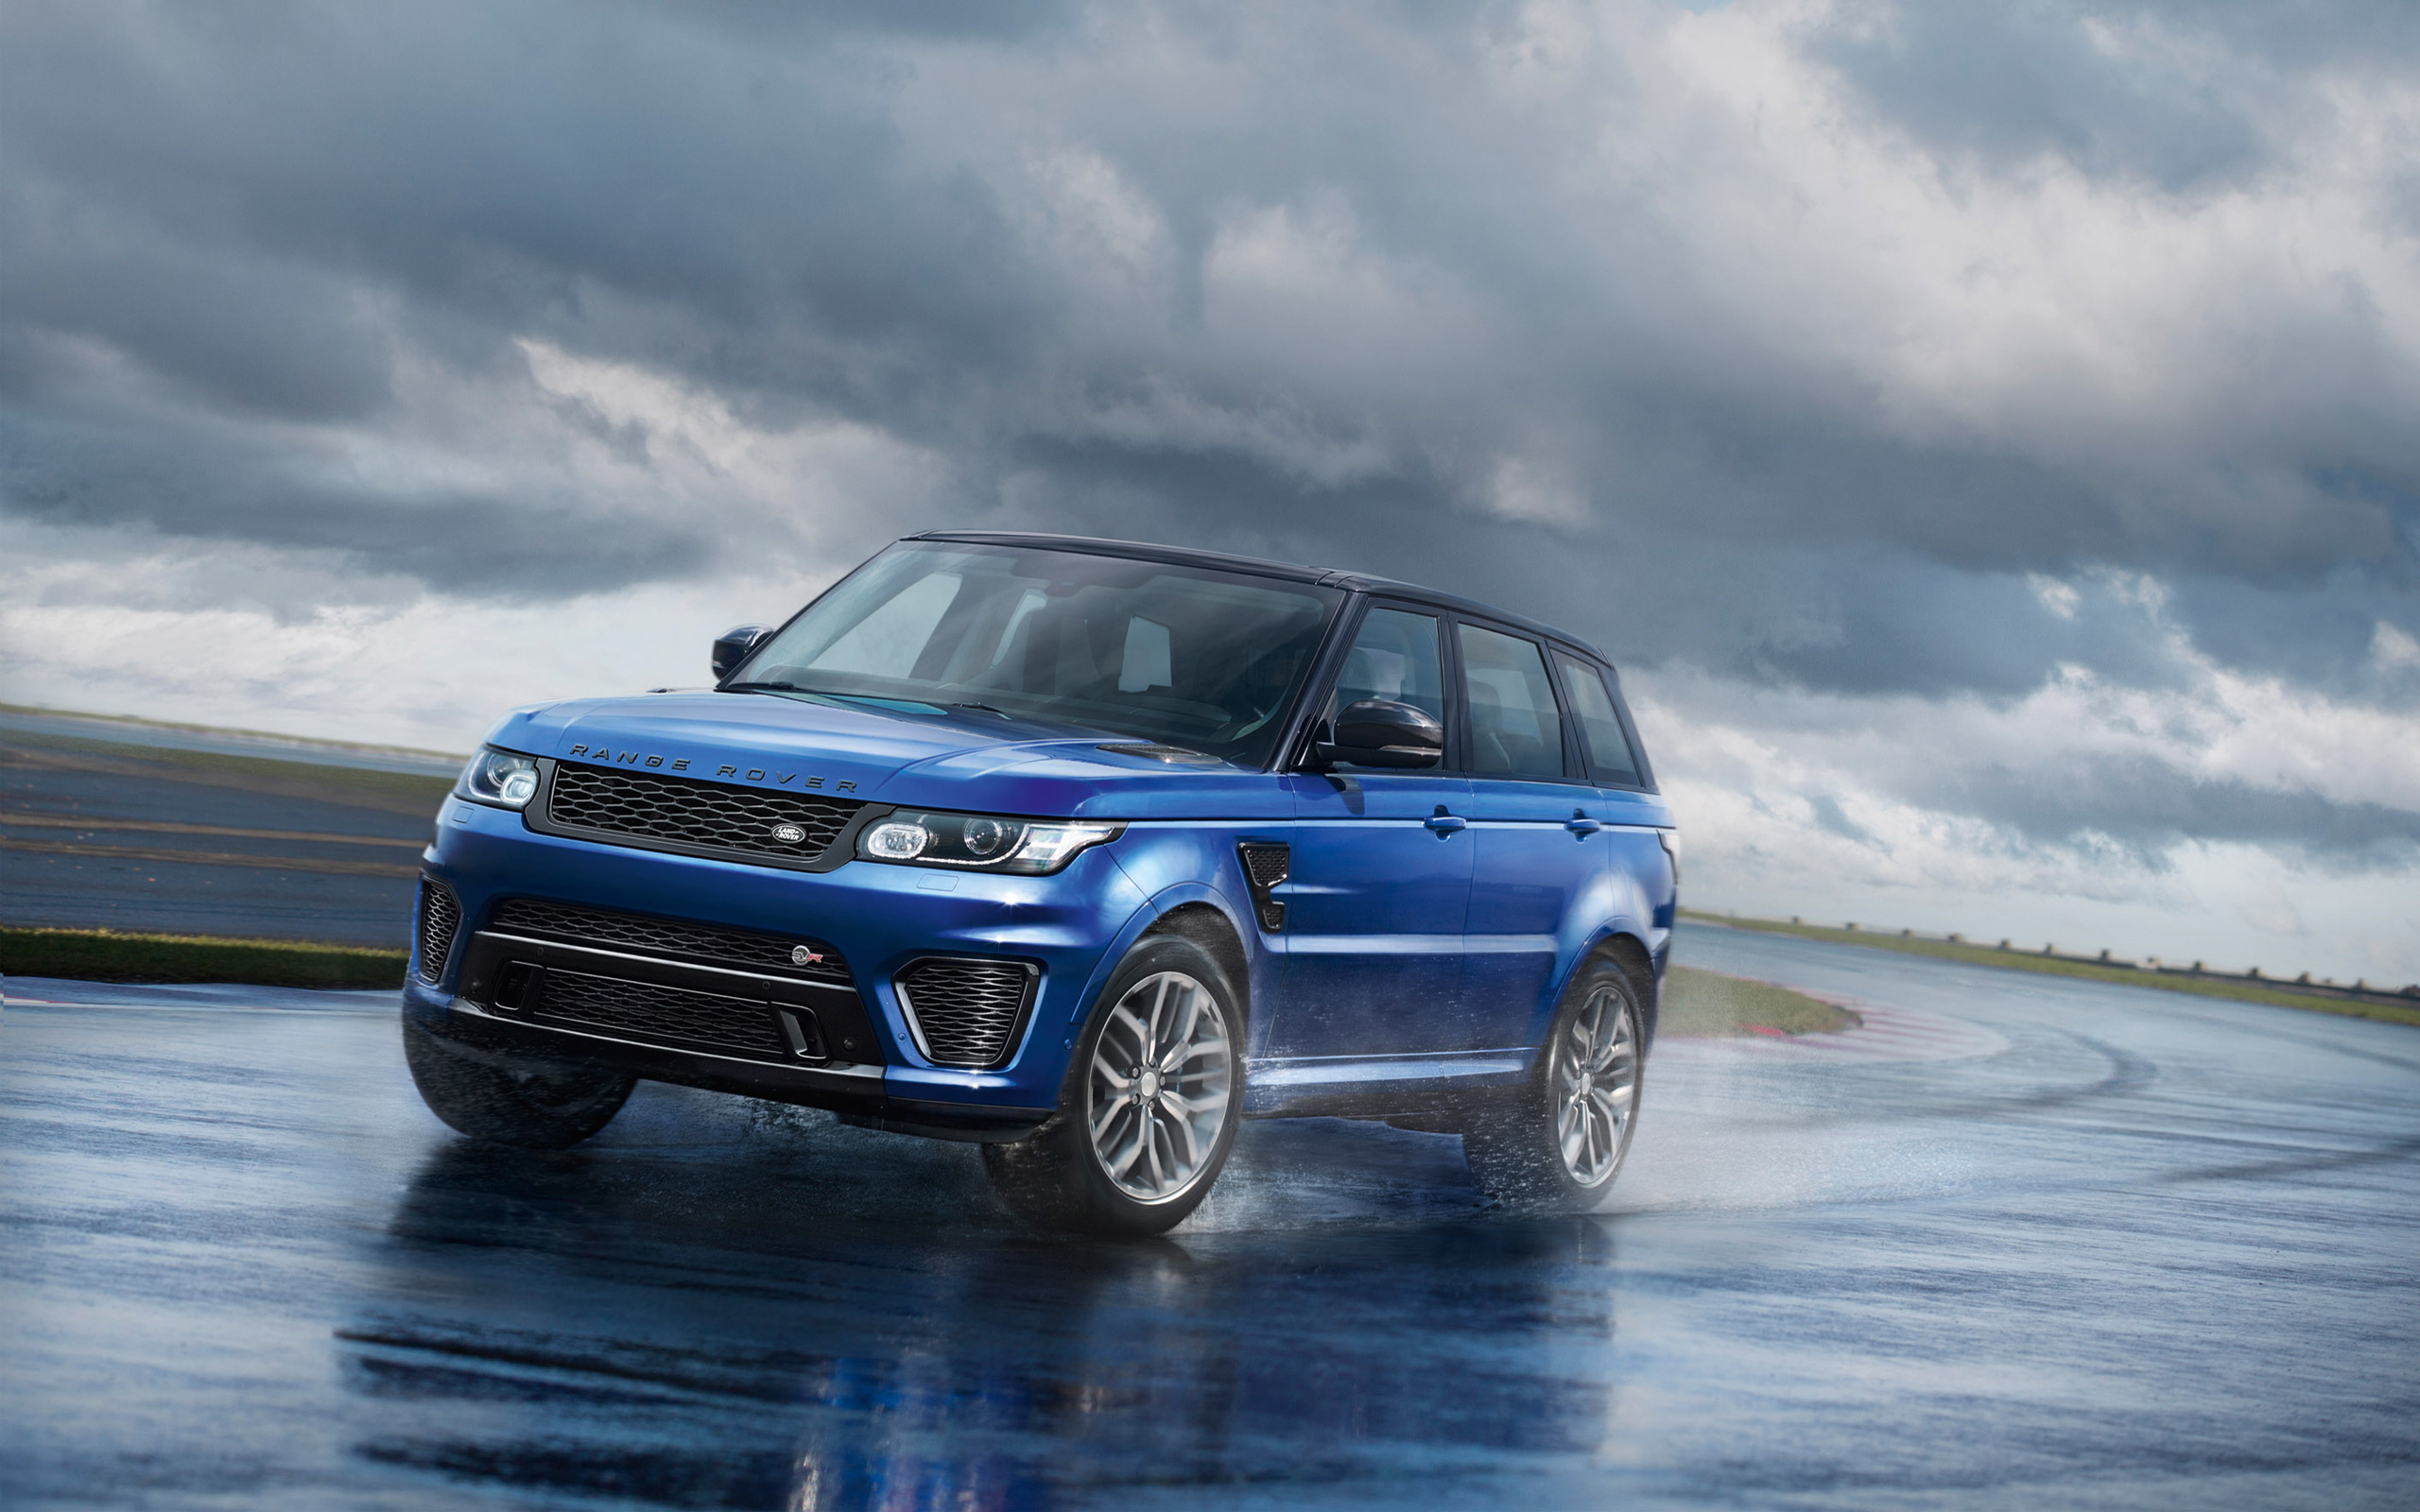 2015 Range Rover Sport SVR Wallpaper HD Car Wallpapers 2560x1600